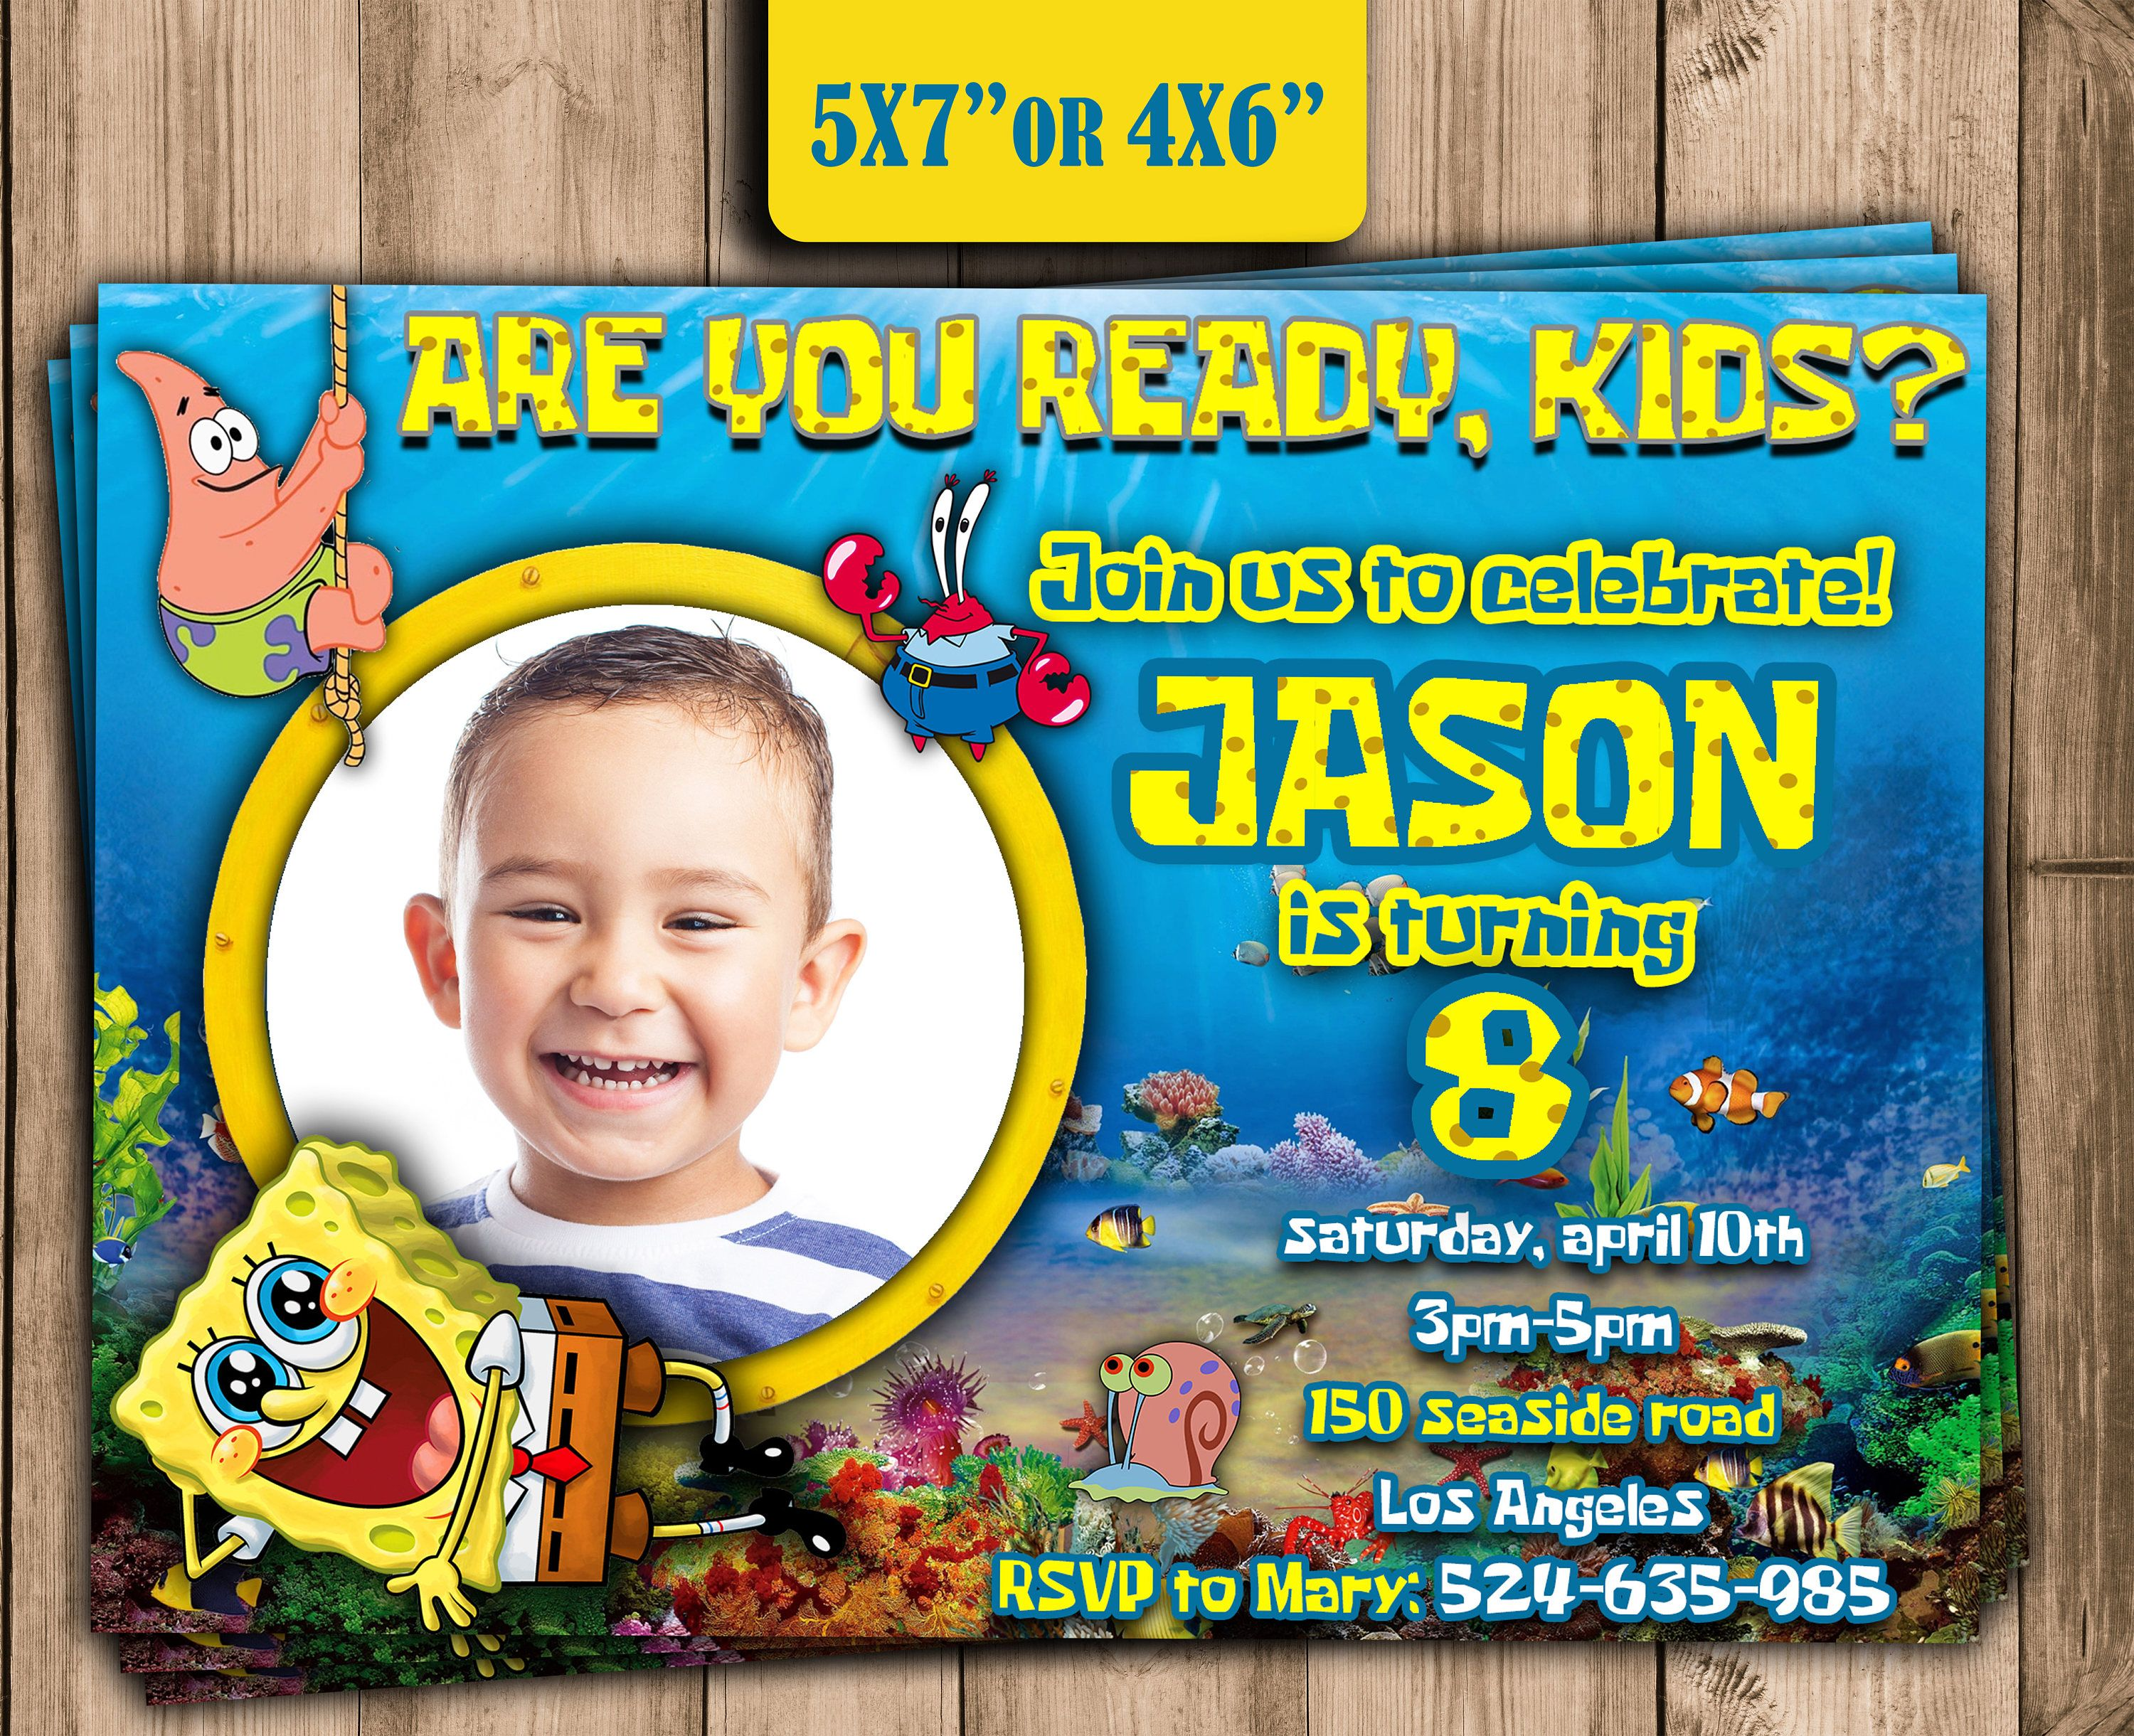 SPONGEBOB Birthday Party INVITATIONpersonalized Spongebob